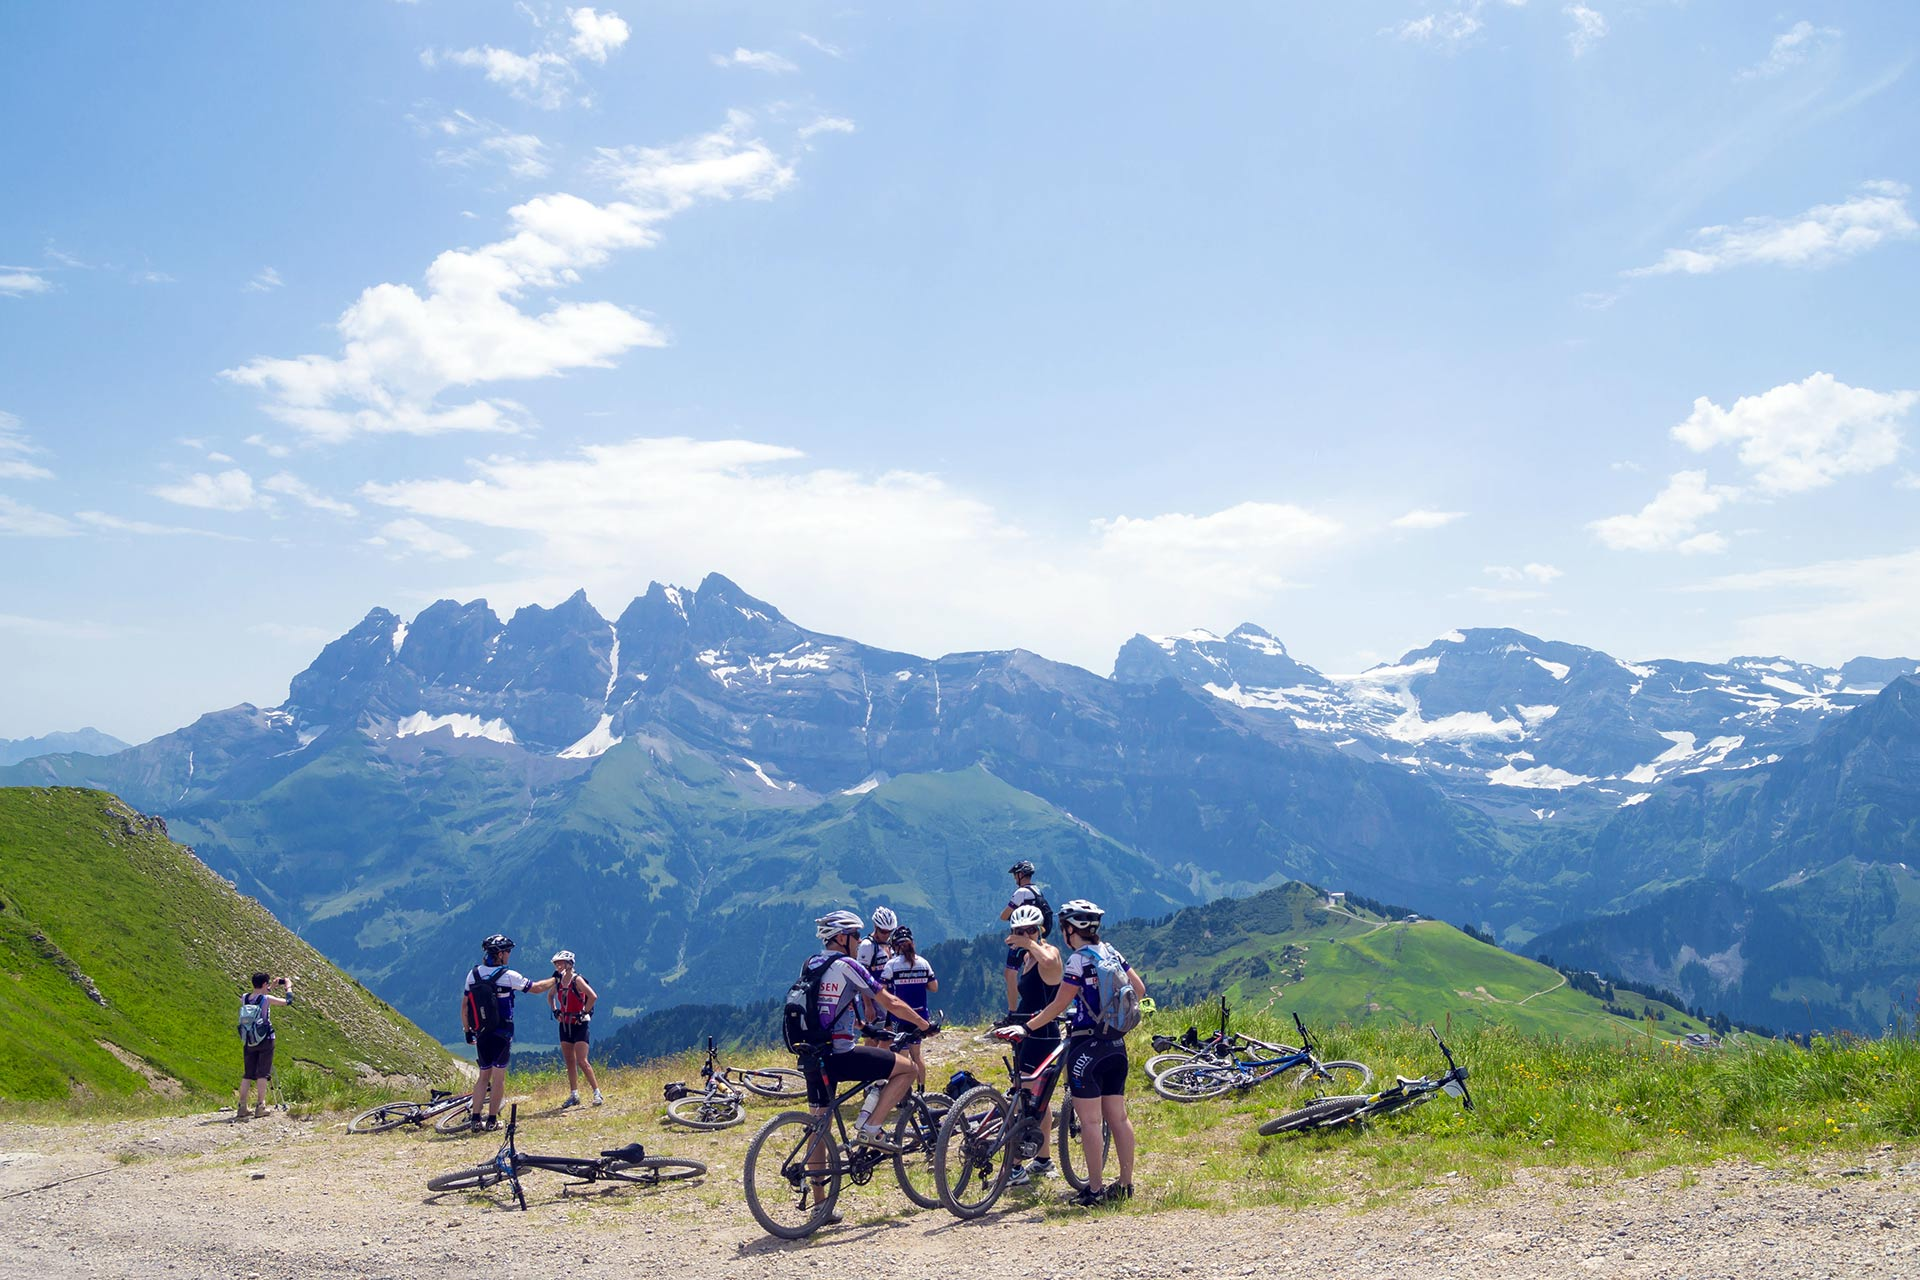 Bikers in Swiss Alps, Portes du Soleil Region; Photo Courtesy of ELEPHOTOS/Shutterstock.com